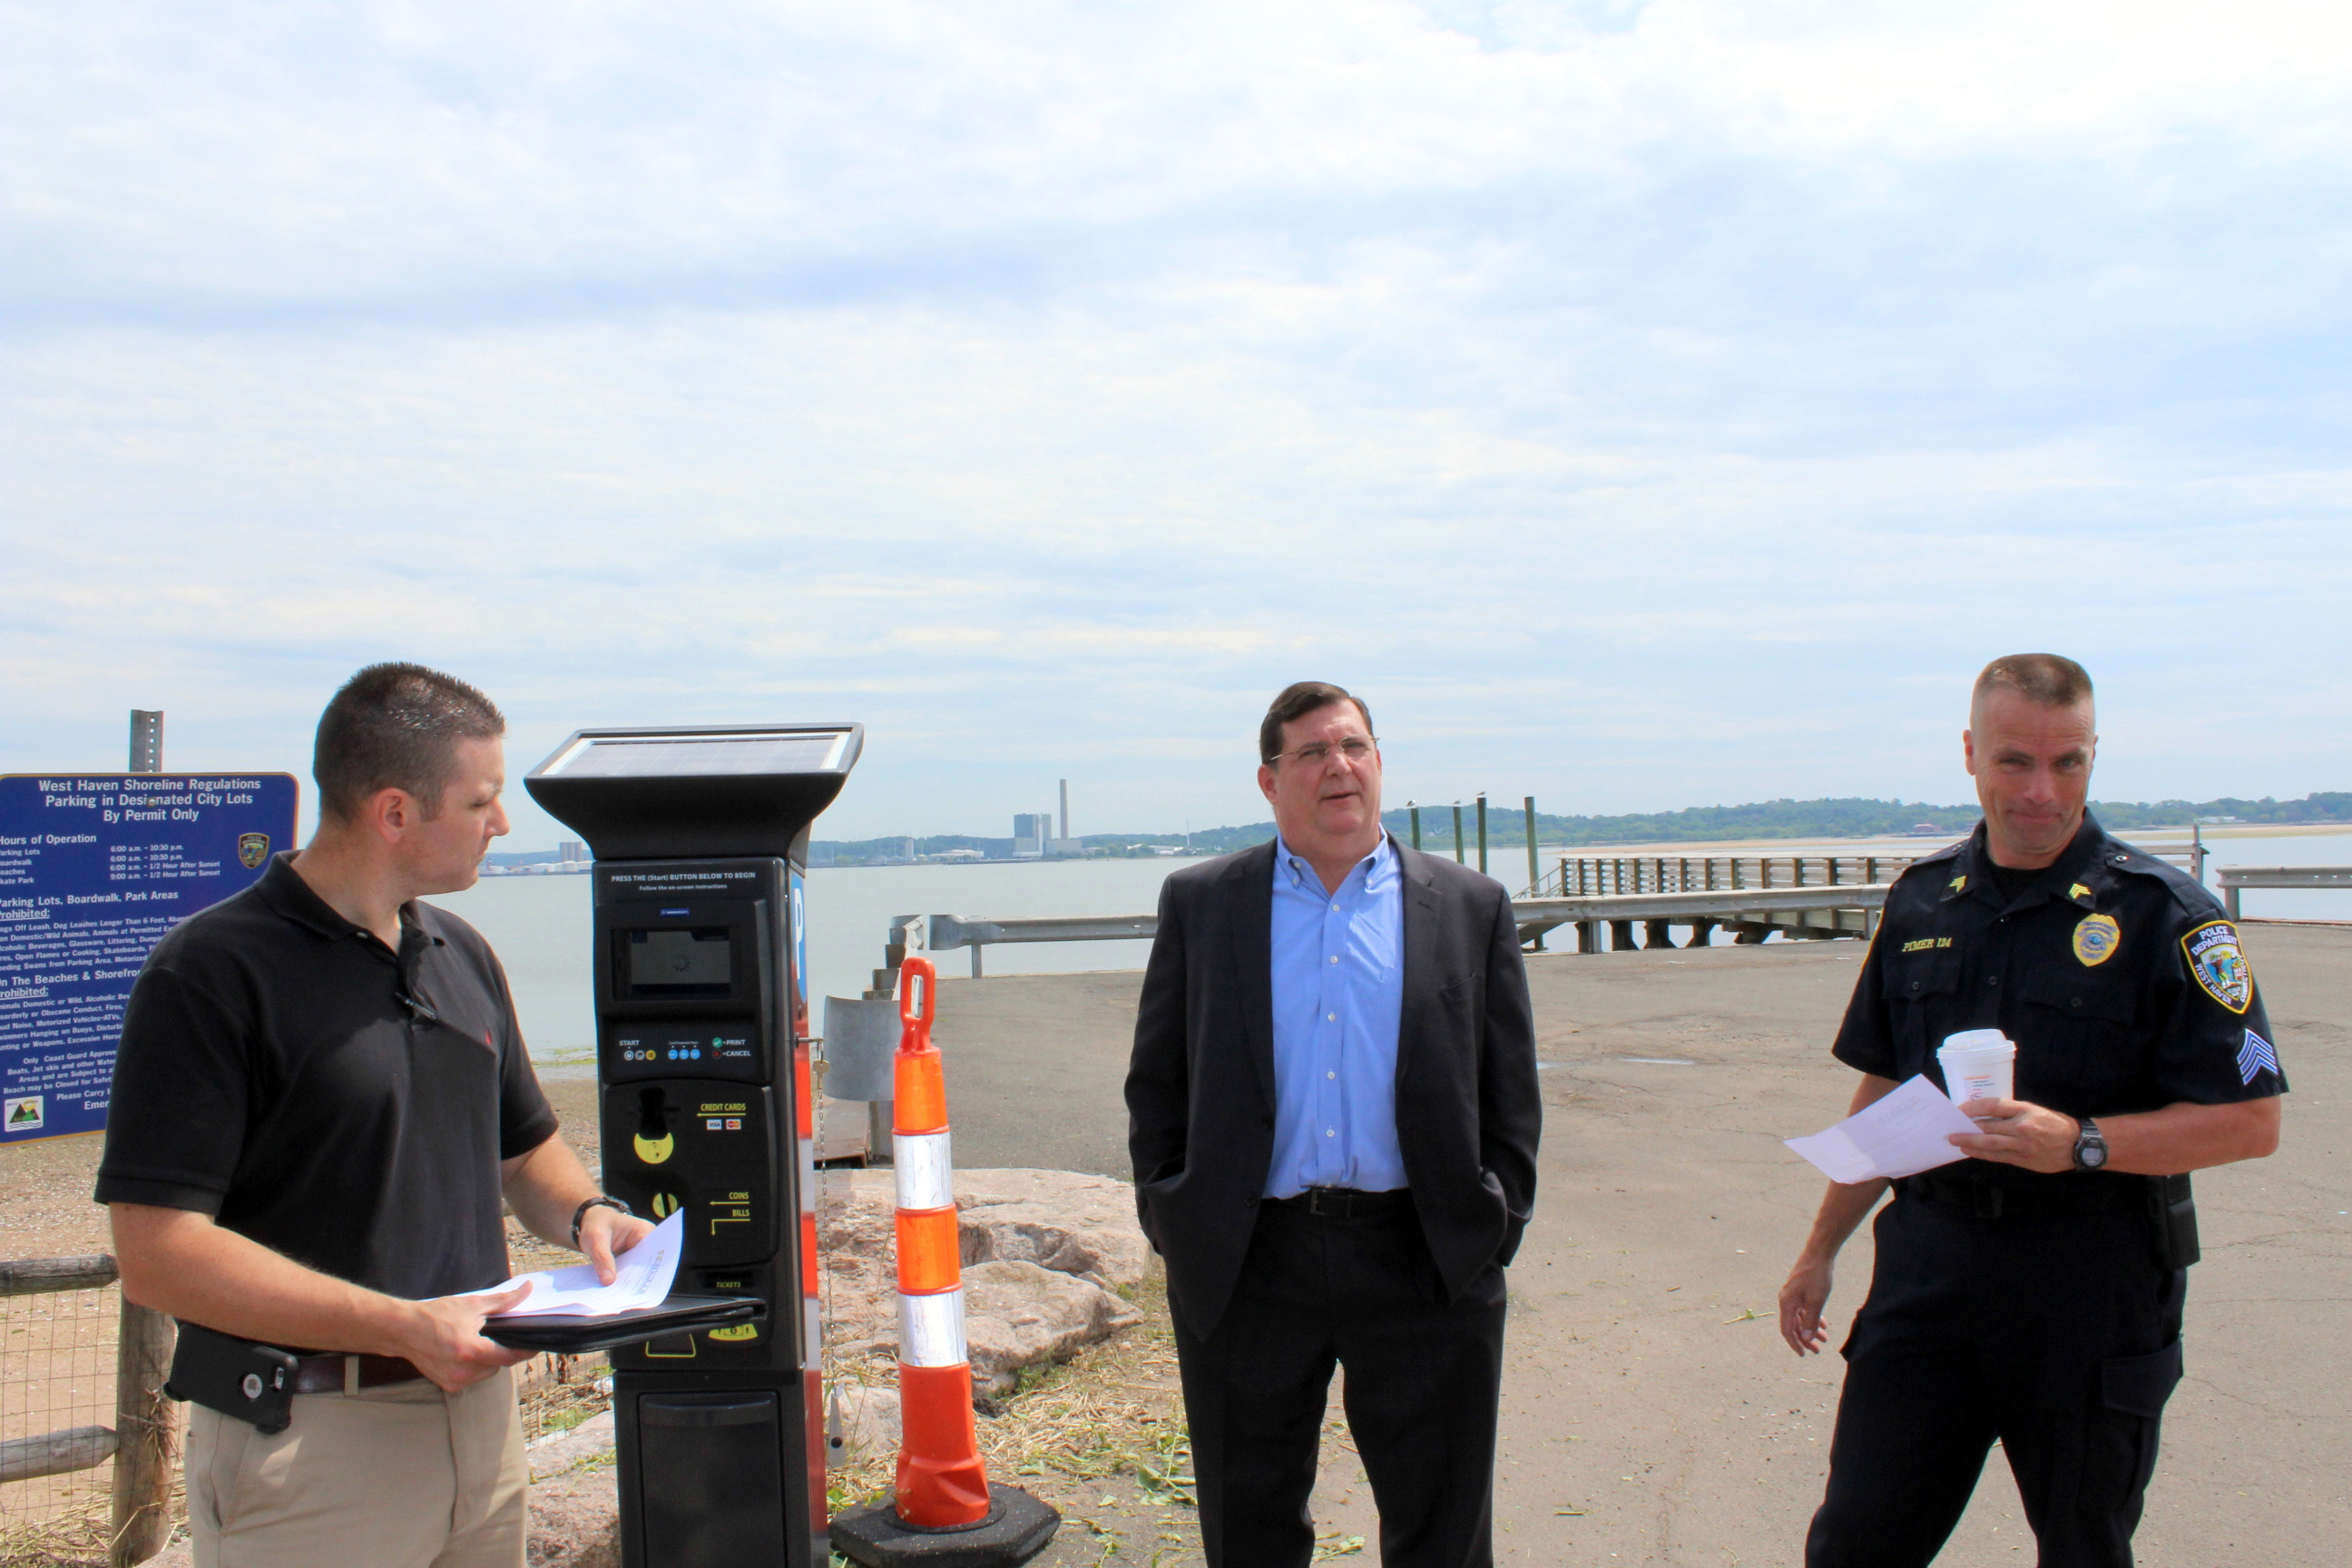 Additional parking meters installed in beach lots